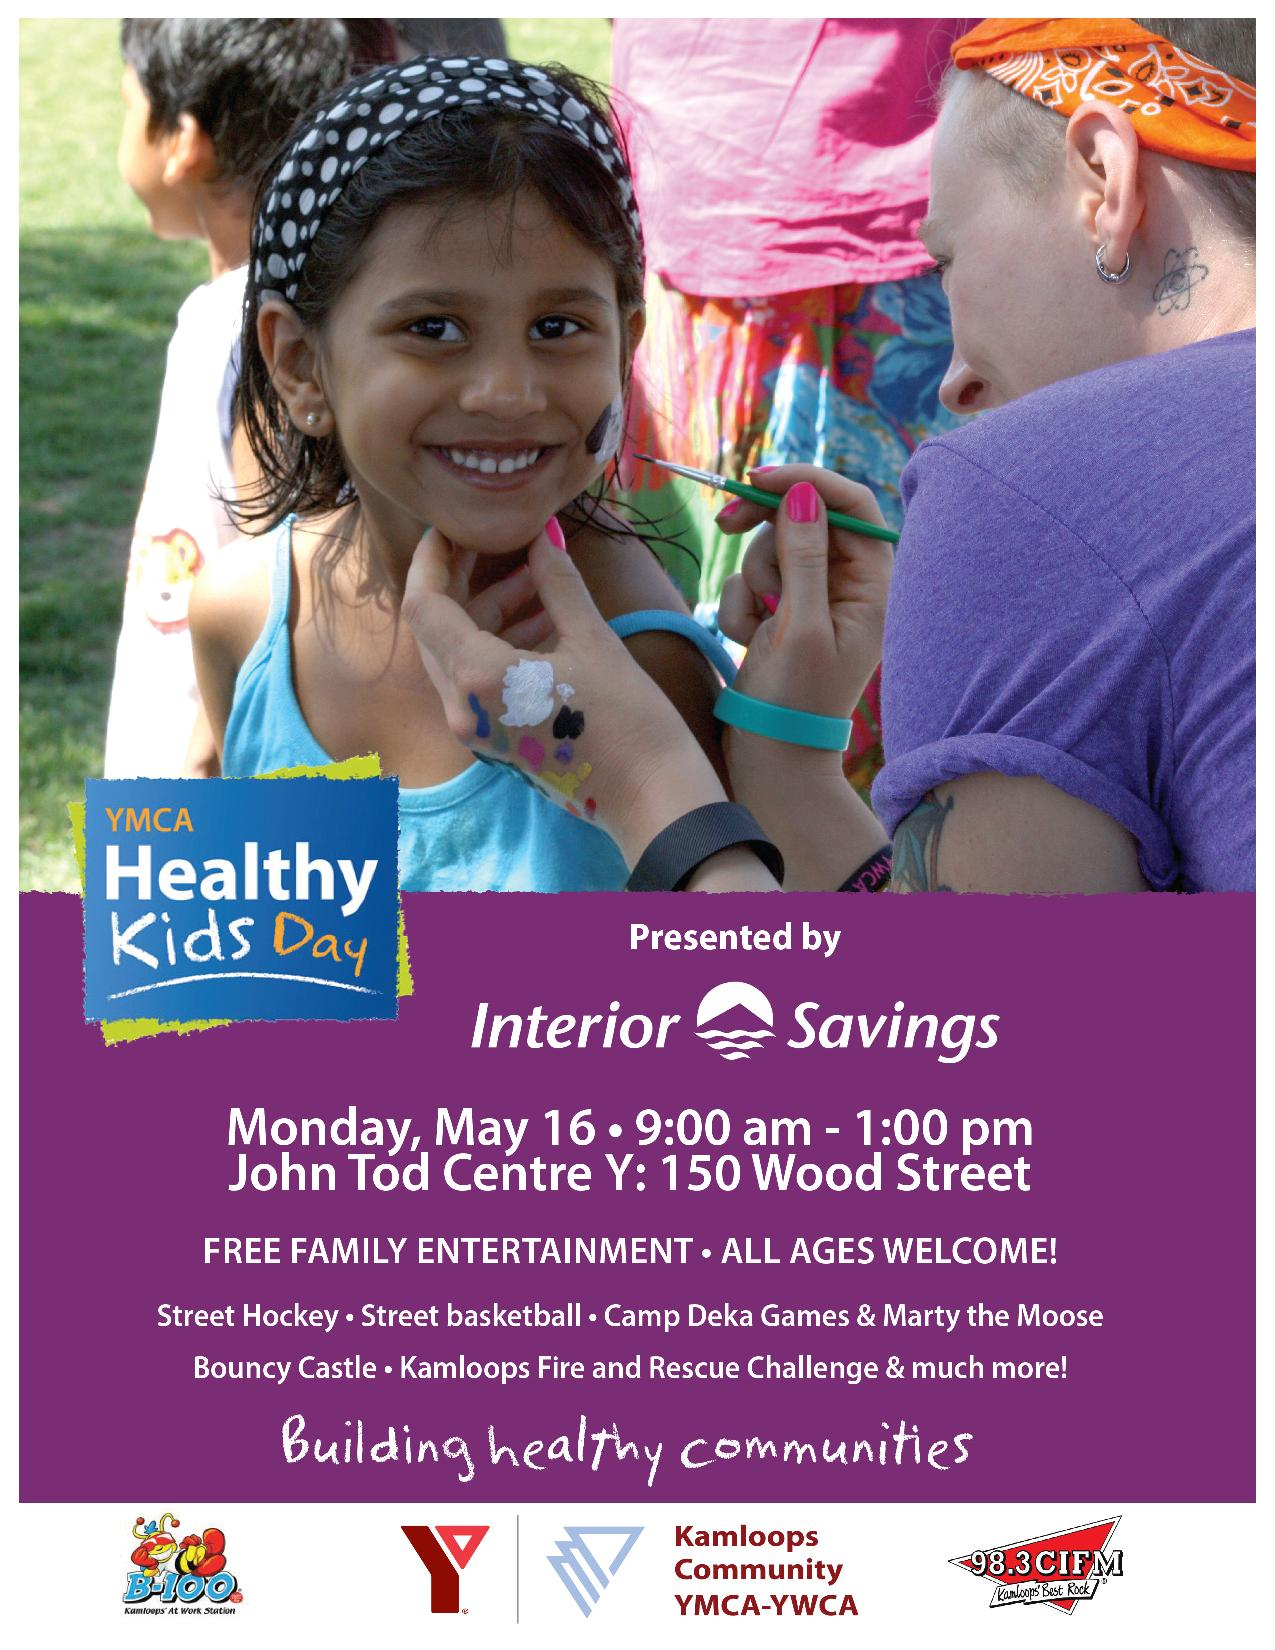 HealthyKidsDay-Kamloops2015_Poster_8.5x11Final-page-001.jpg